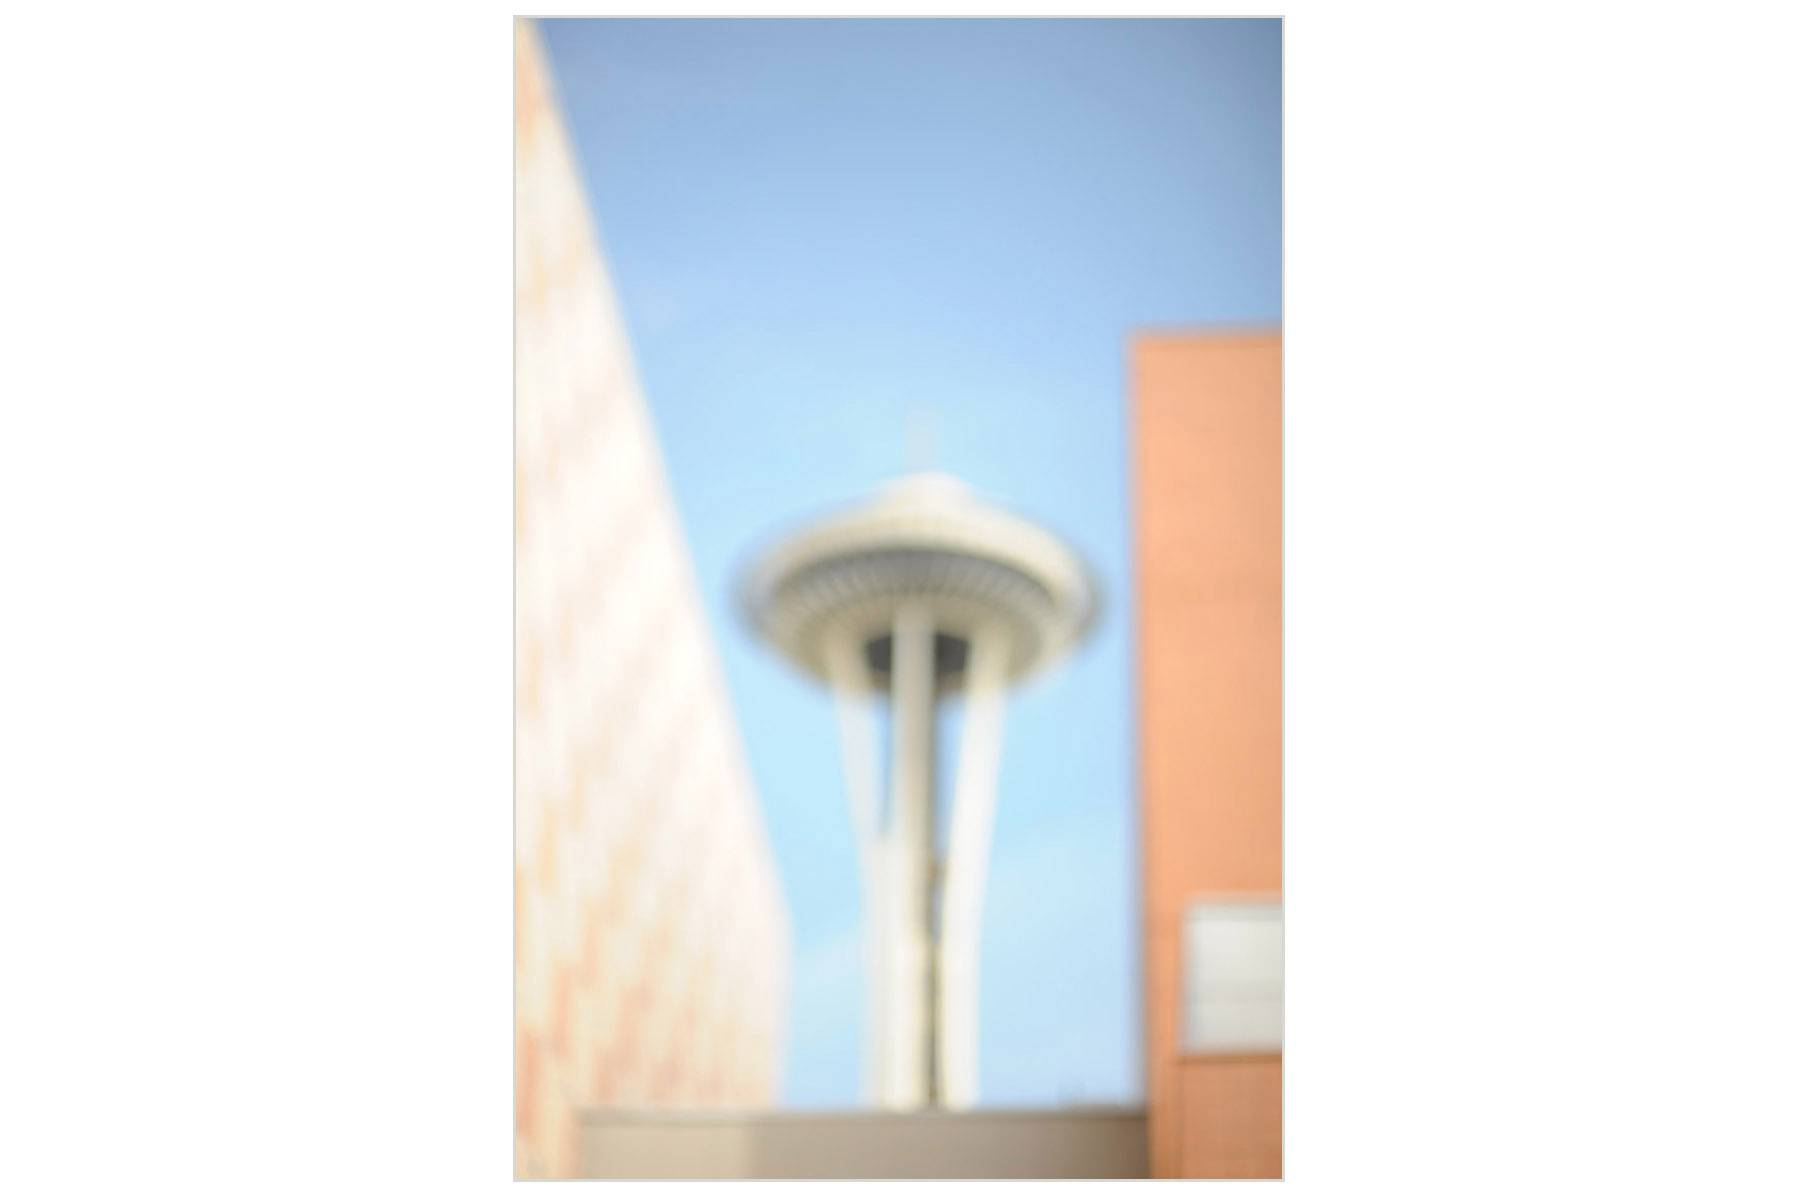 8_1spaceneedle_for_2012_website_dsc_7818_copy.jpg